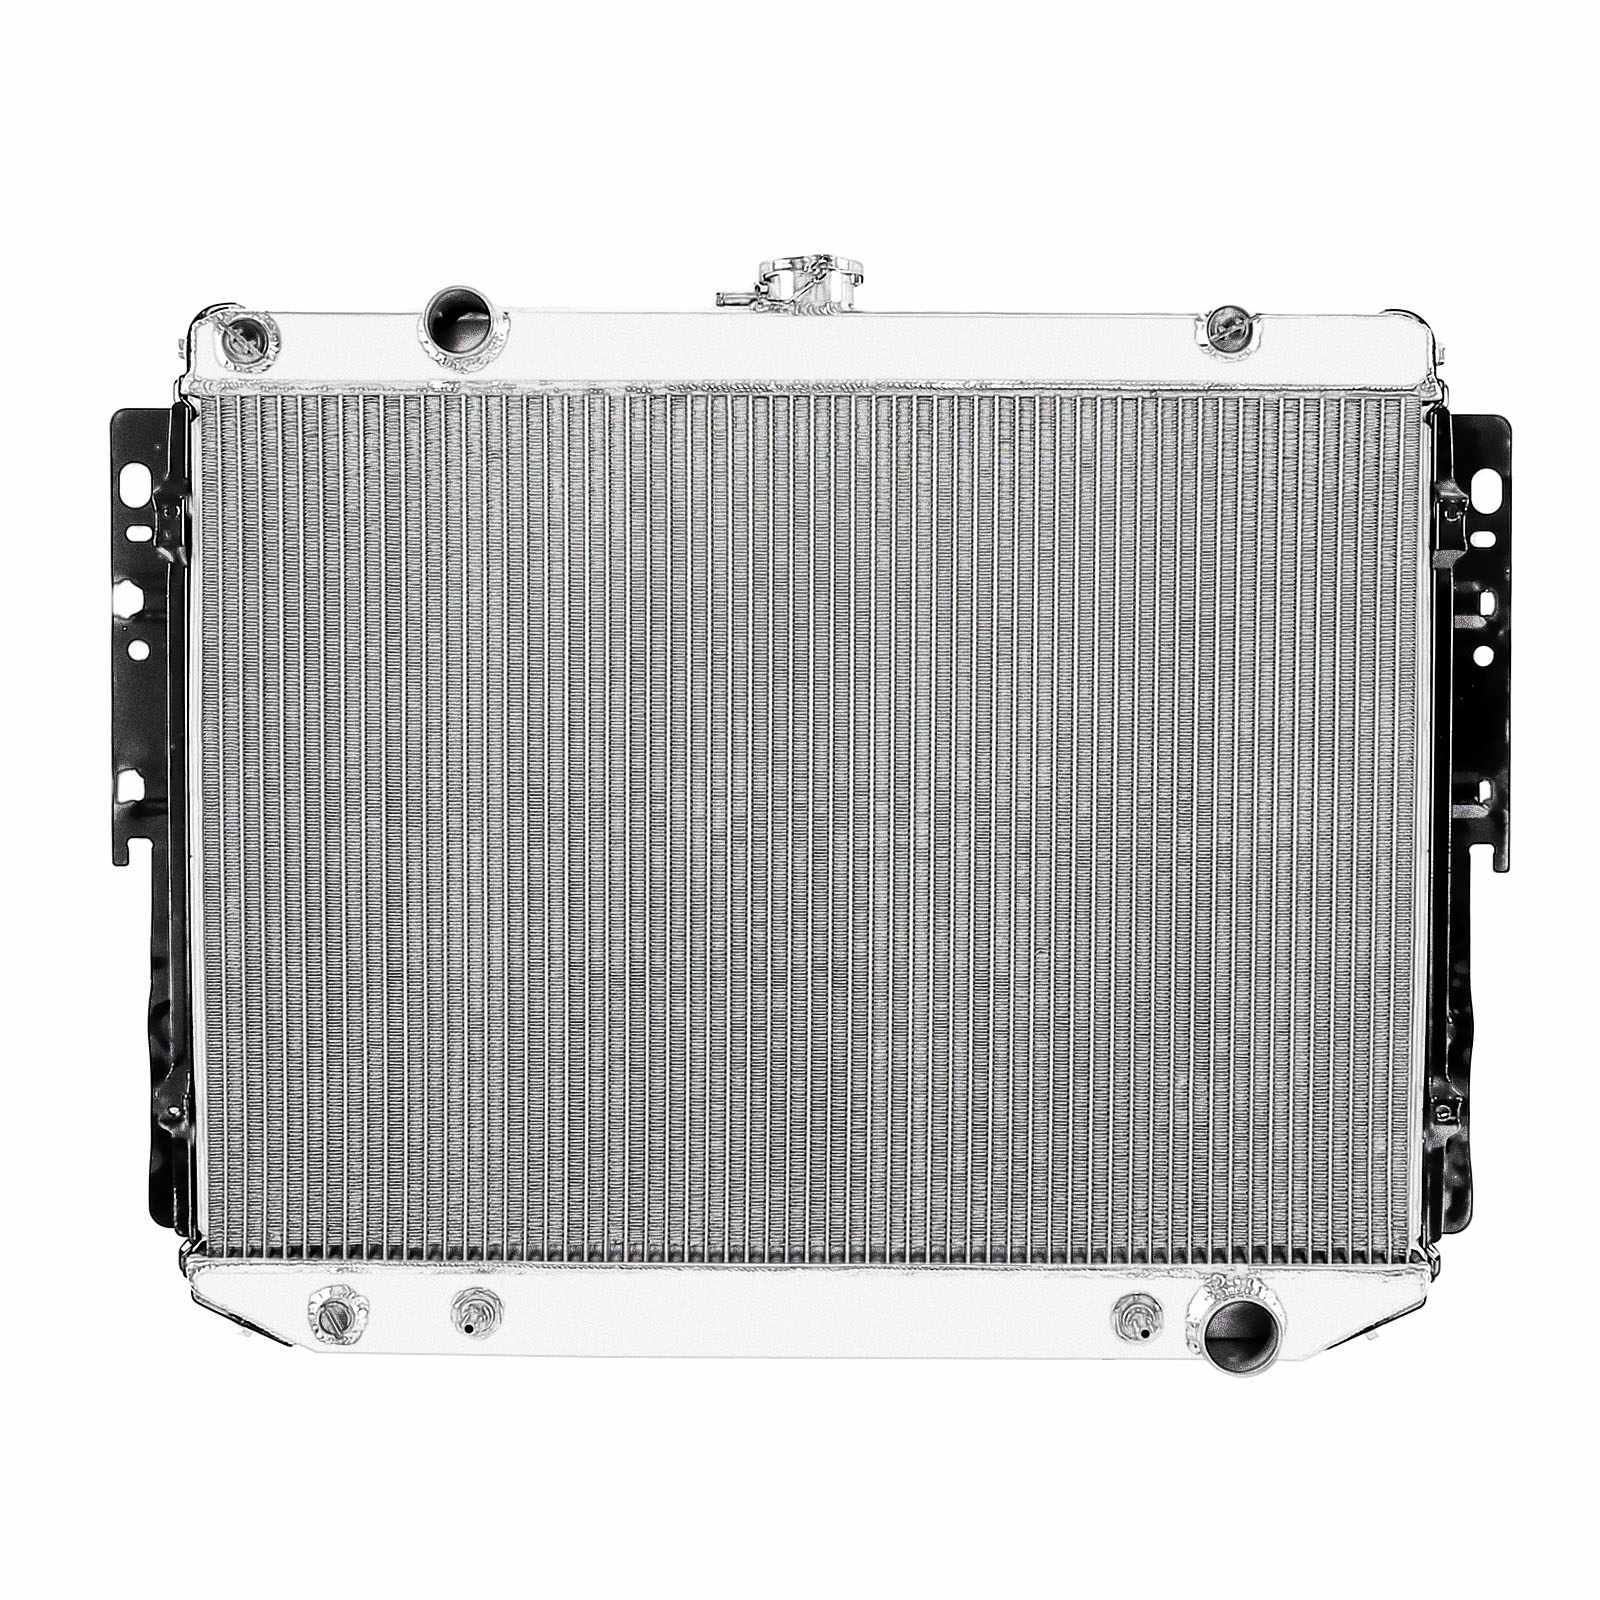 NEW Full Aluminum New Radiator For 1974 - 1980 Dodge Ramcharger B Series VAN AT